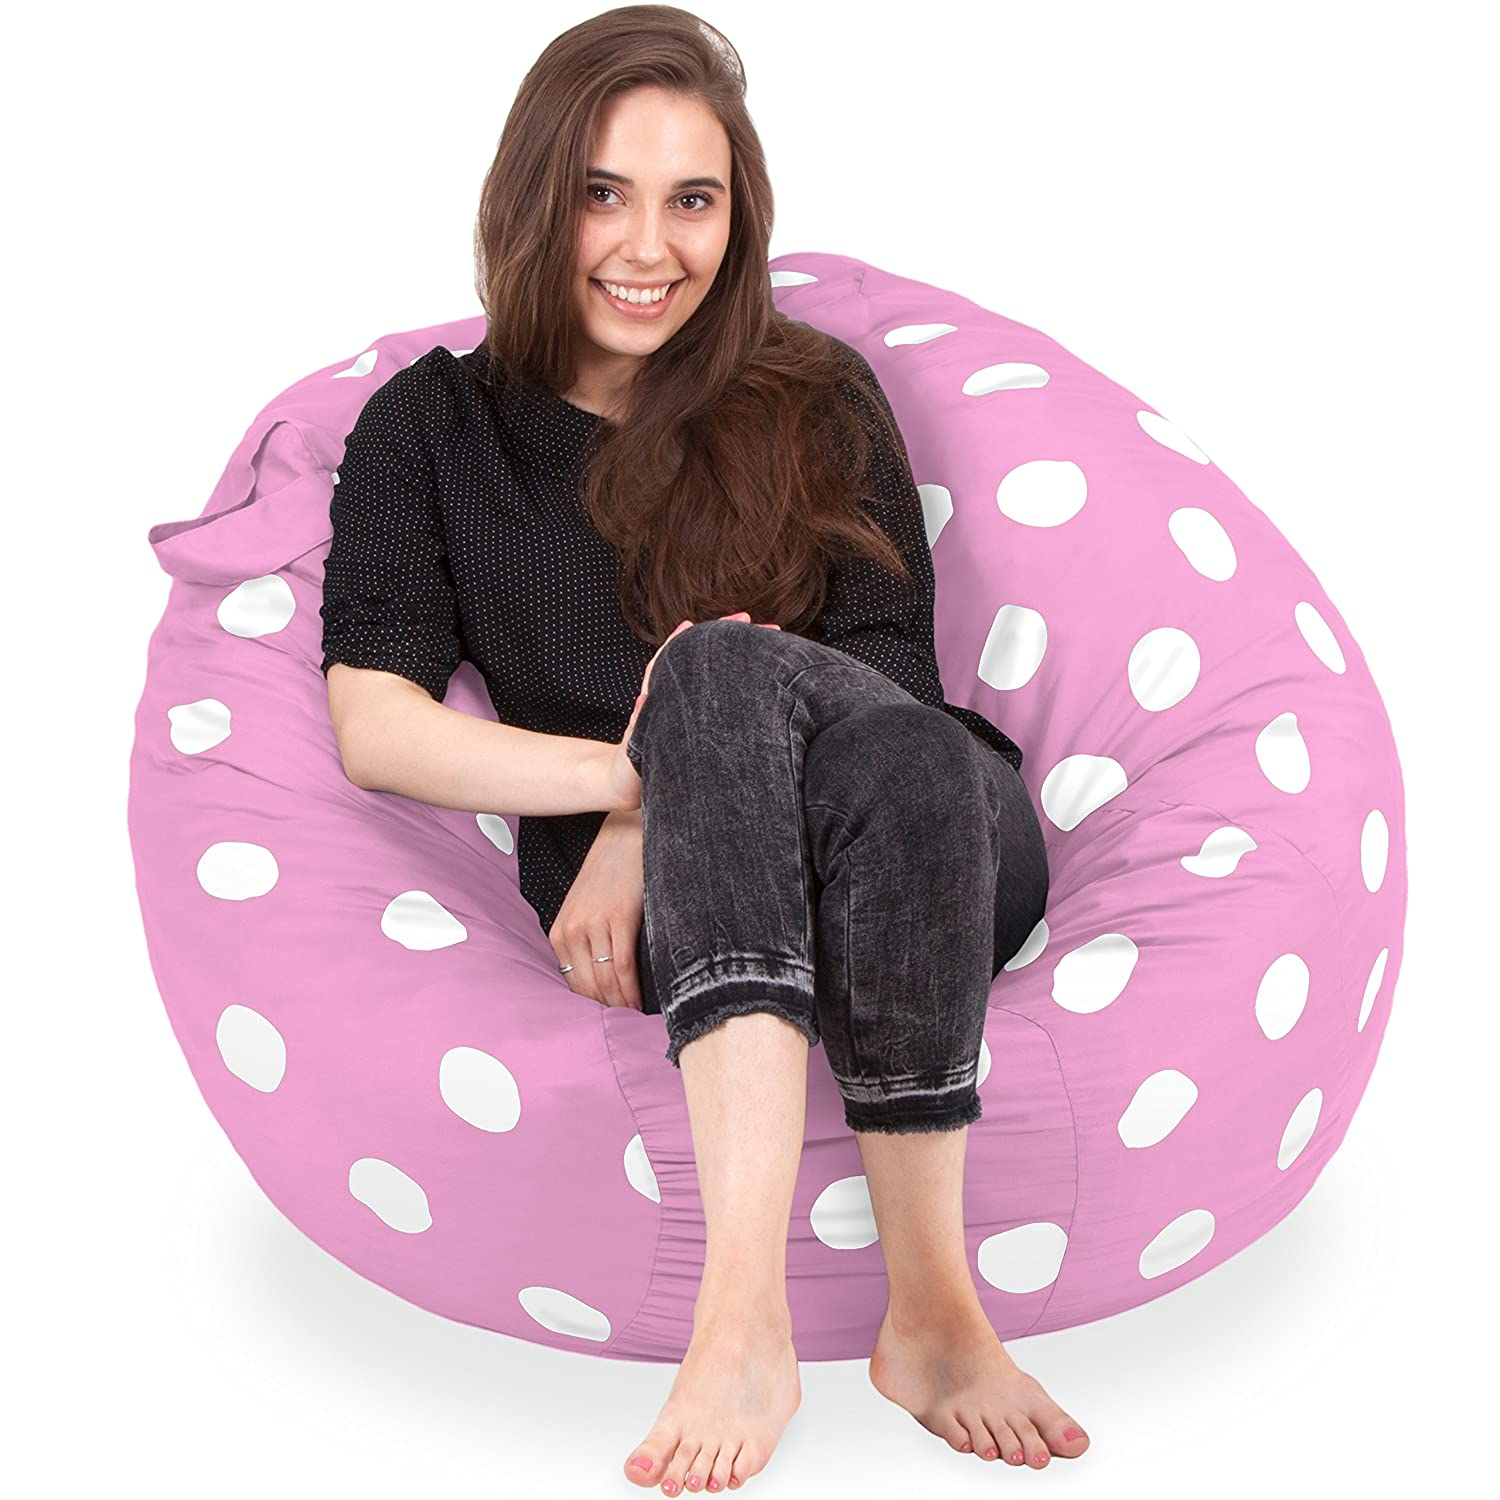 Amazon King Sized Bean Bag Chair in Lavender New King Size